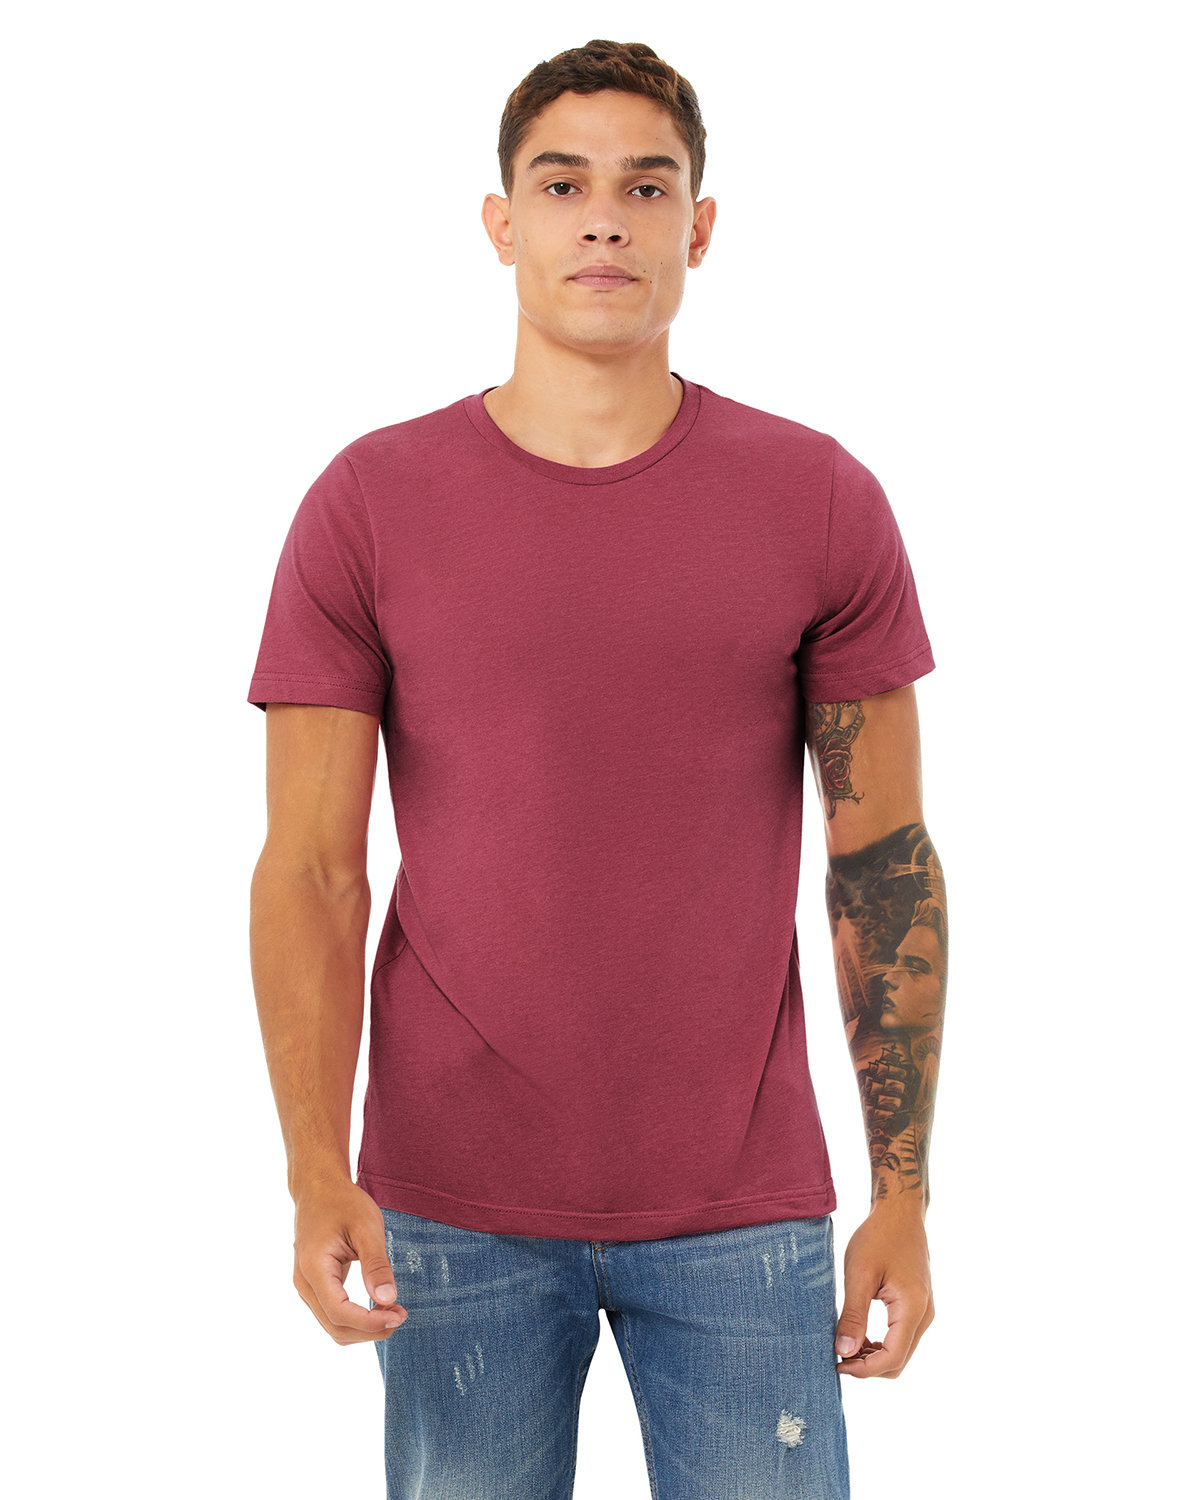 Bella + Canvas Unisex Heather CVC T-Shirt HTHR RASPBERRY